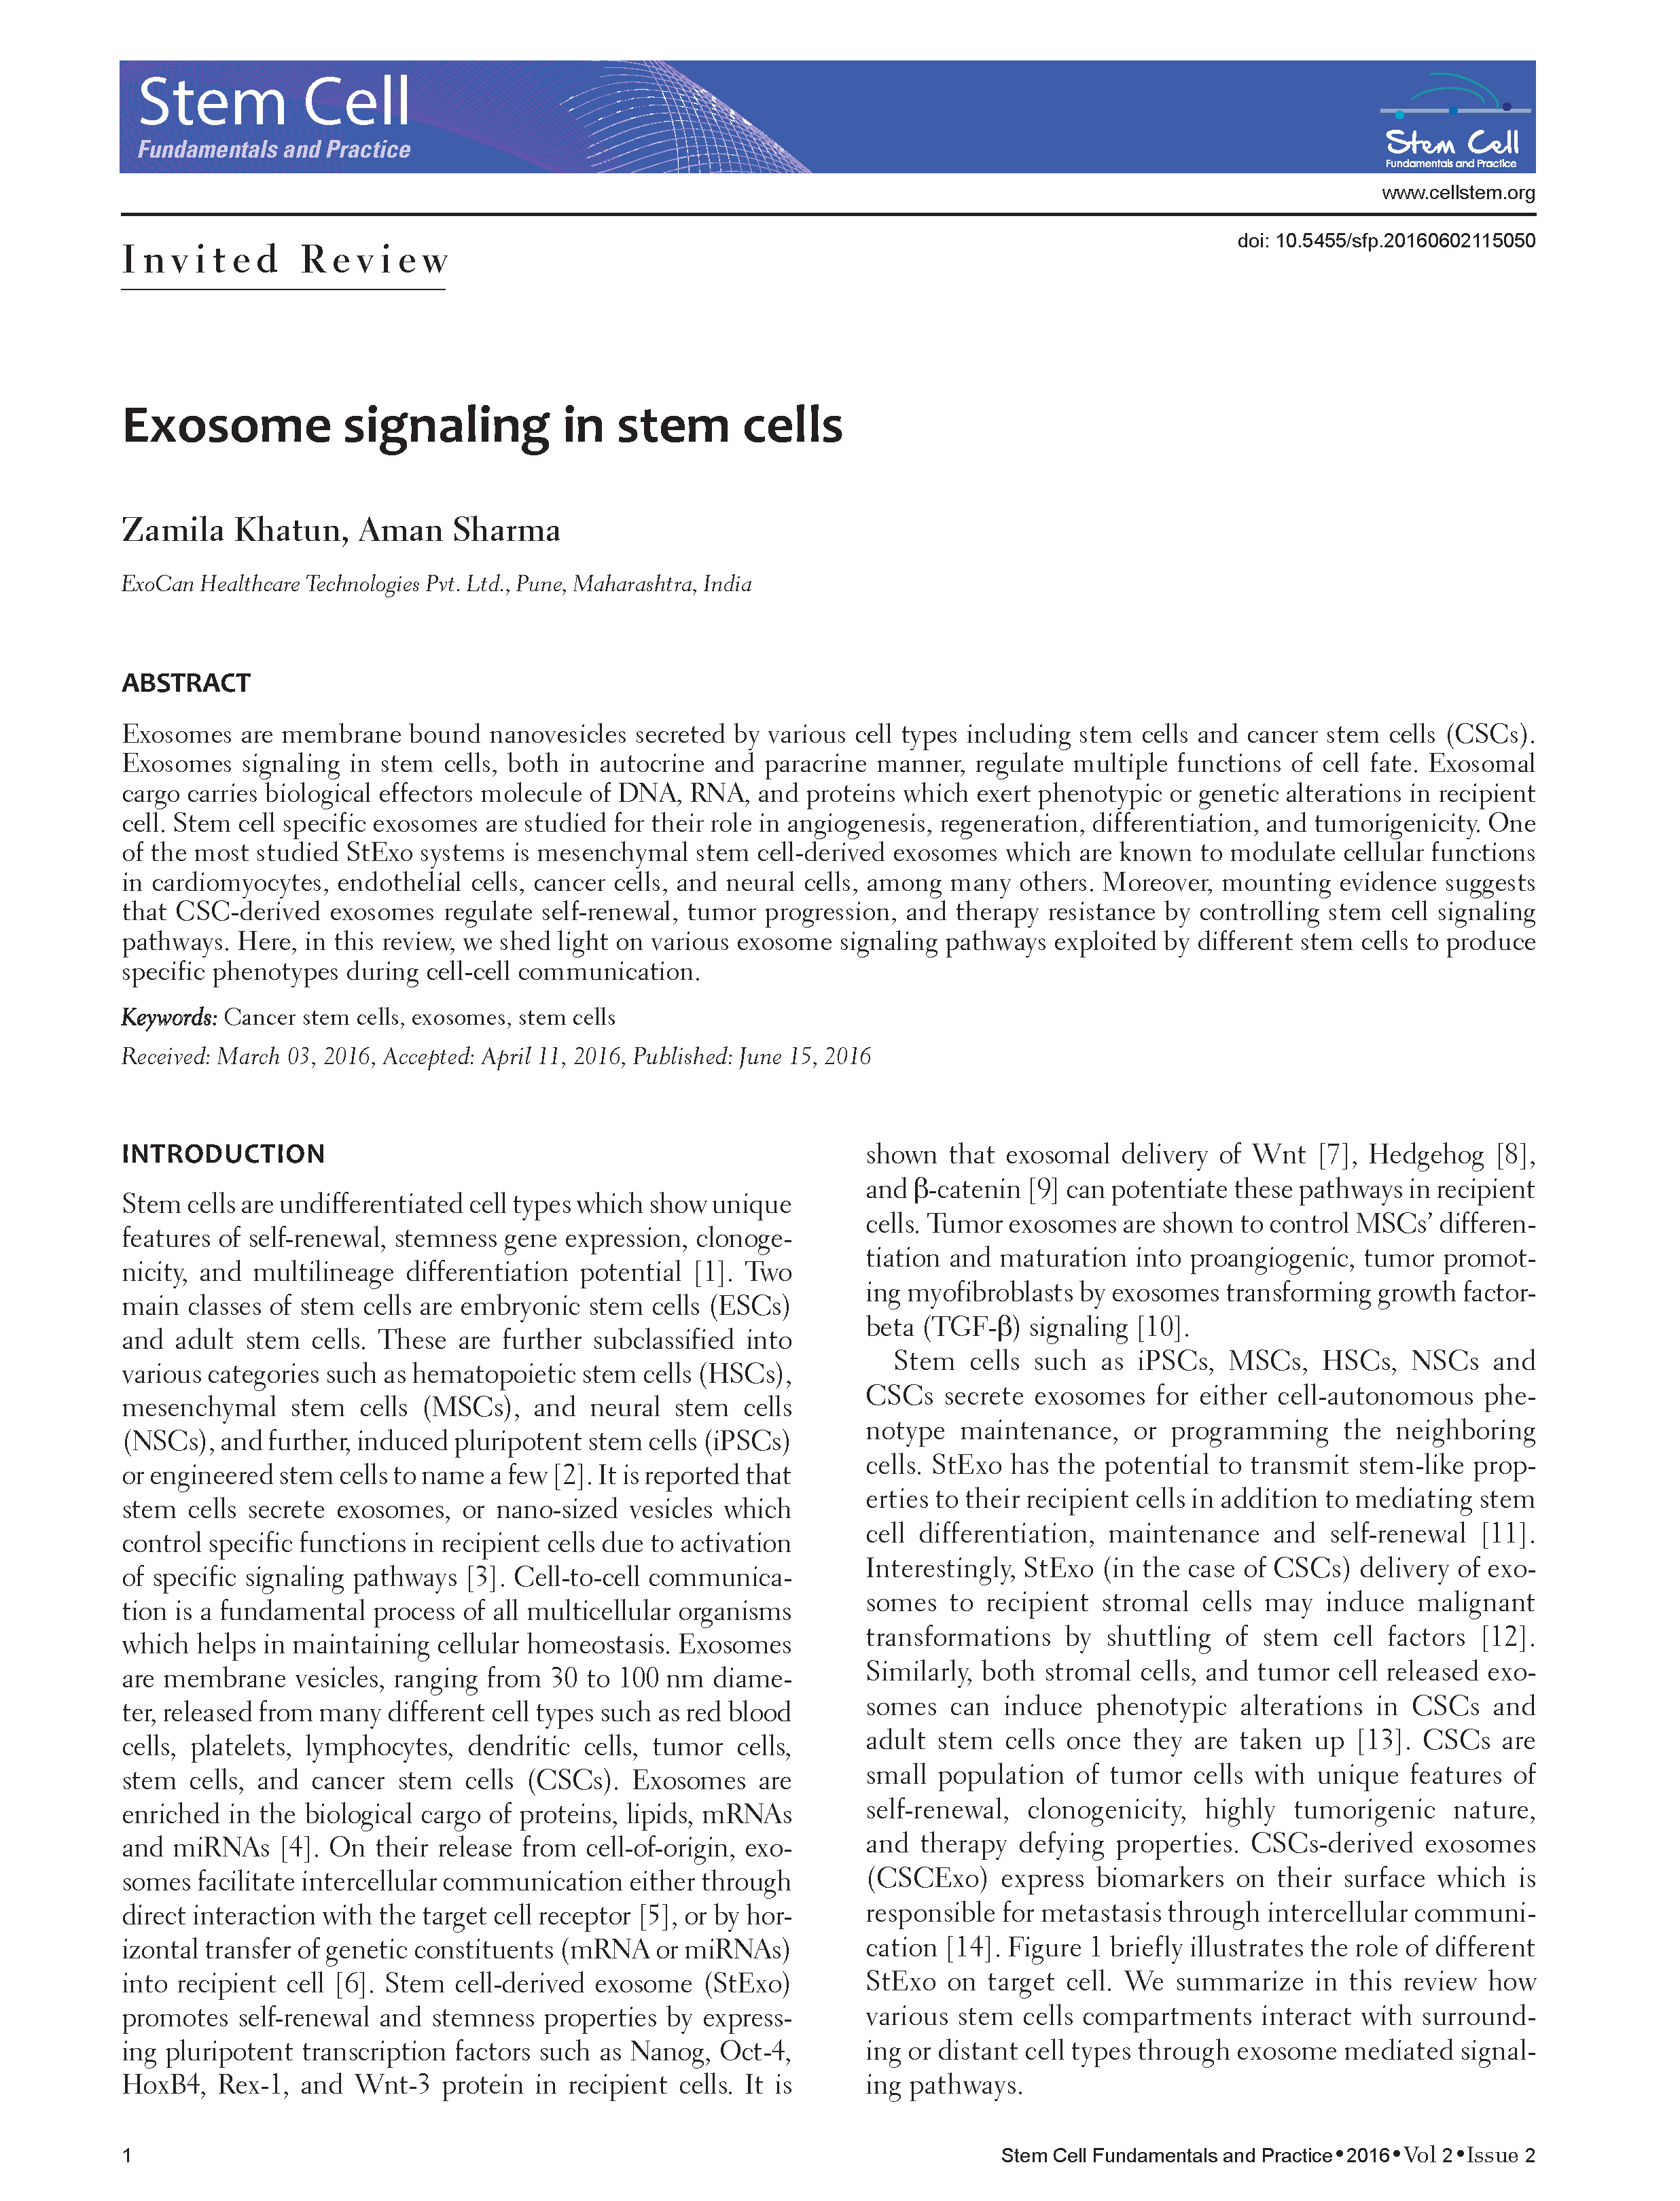 Receiving Report Template Receiving Free Construction Project  Exosome Signalling In Stem Cells Page 1 Receiving Report Template  Payment Receiving ...  Payment Received Template